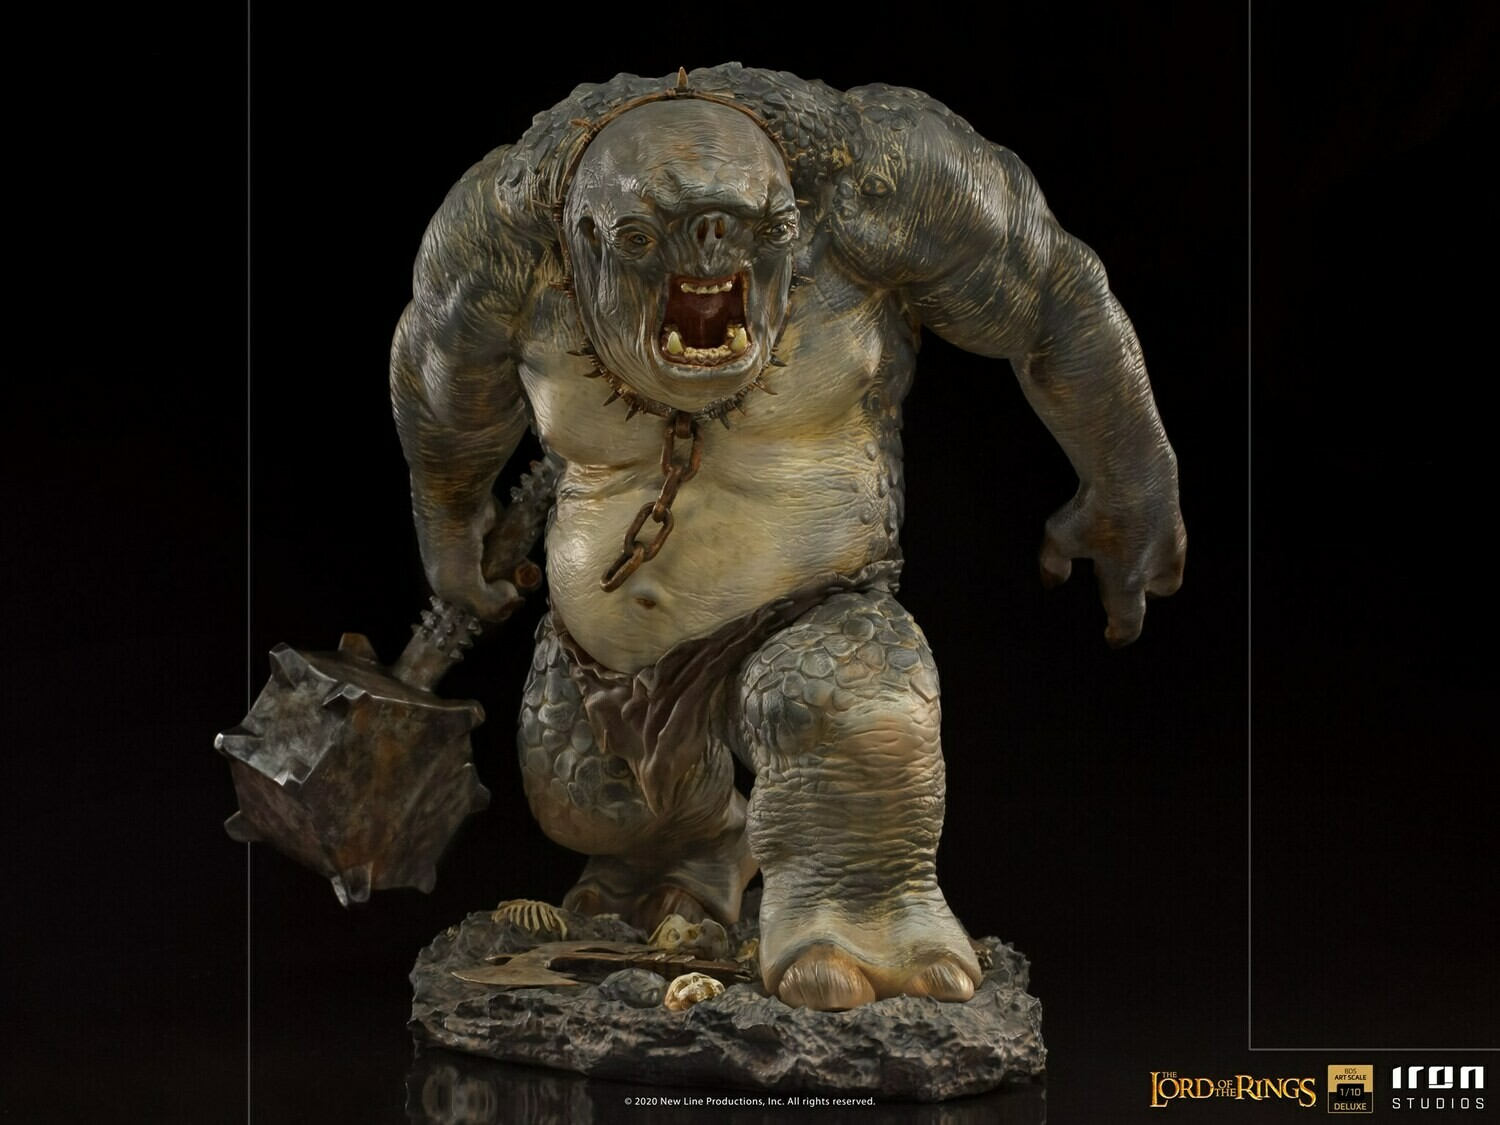 PRE-ORDER Iron Studios Cave Troll Deluxe BDS Art Scale 1/10 - Lord of the Rings